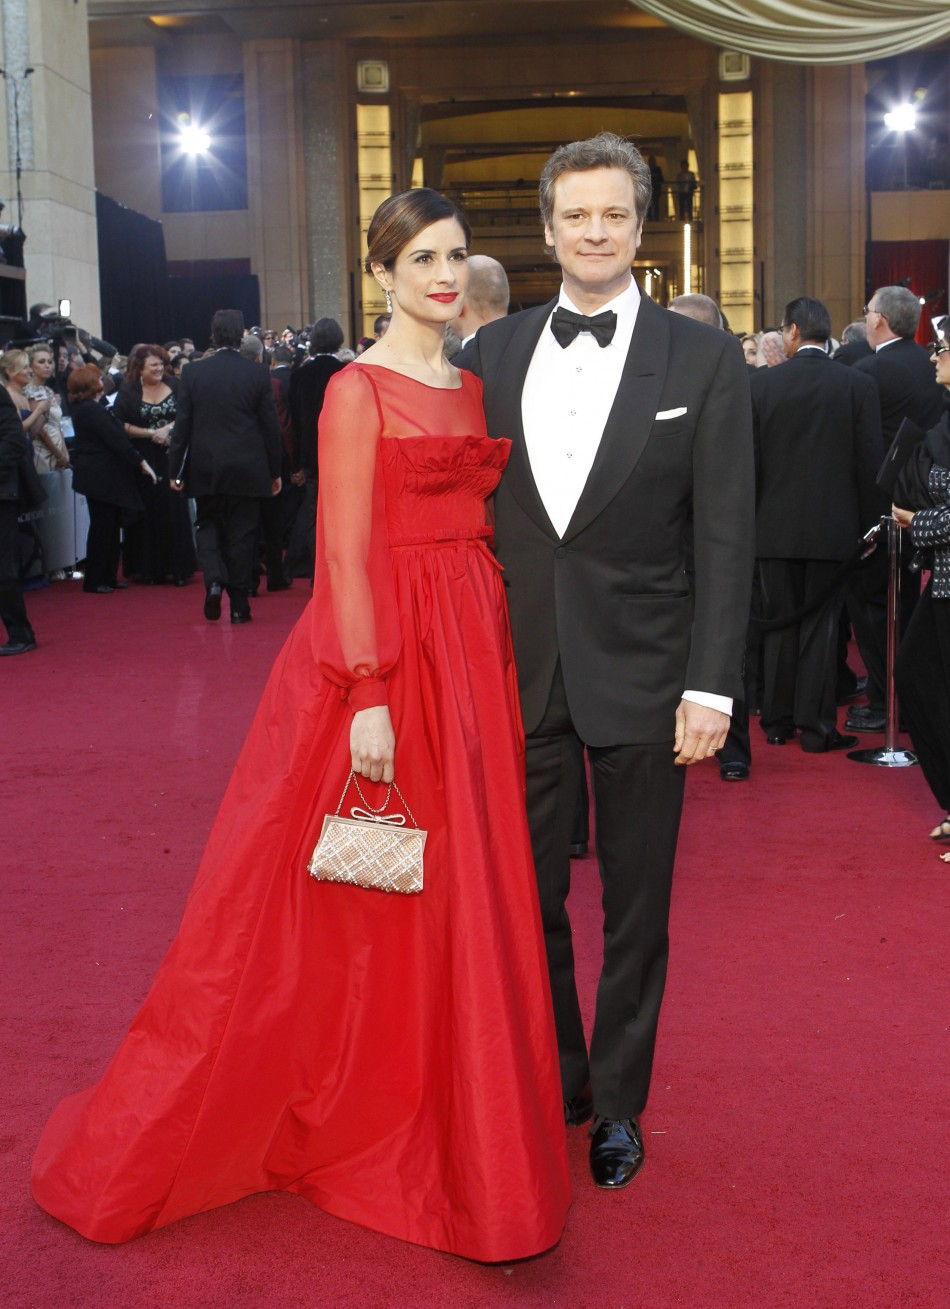 Firth and his wife Livia Giuggioli pose at the 84th Academy Awards in Hollywood